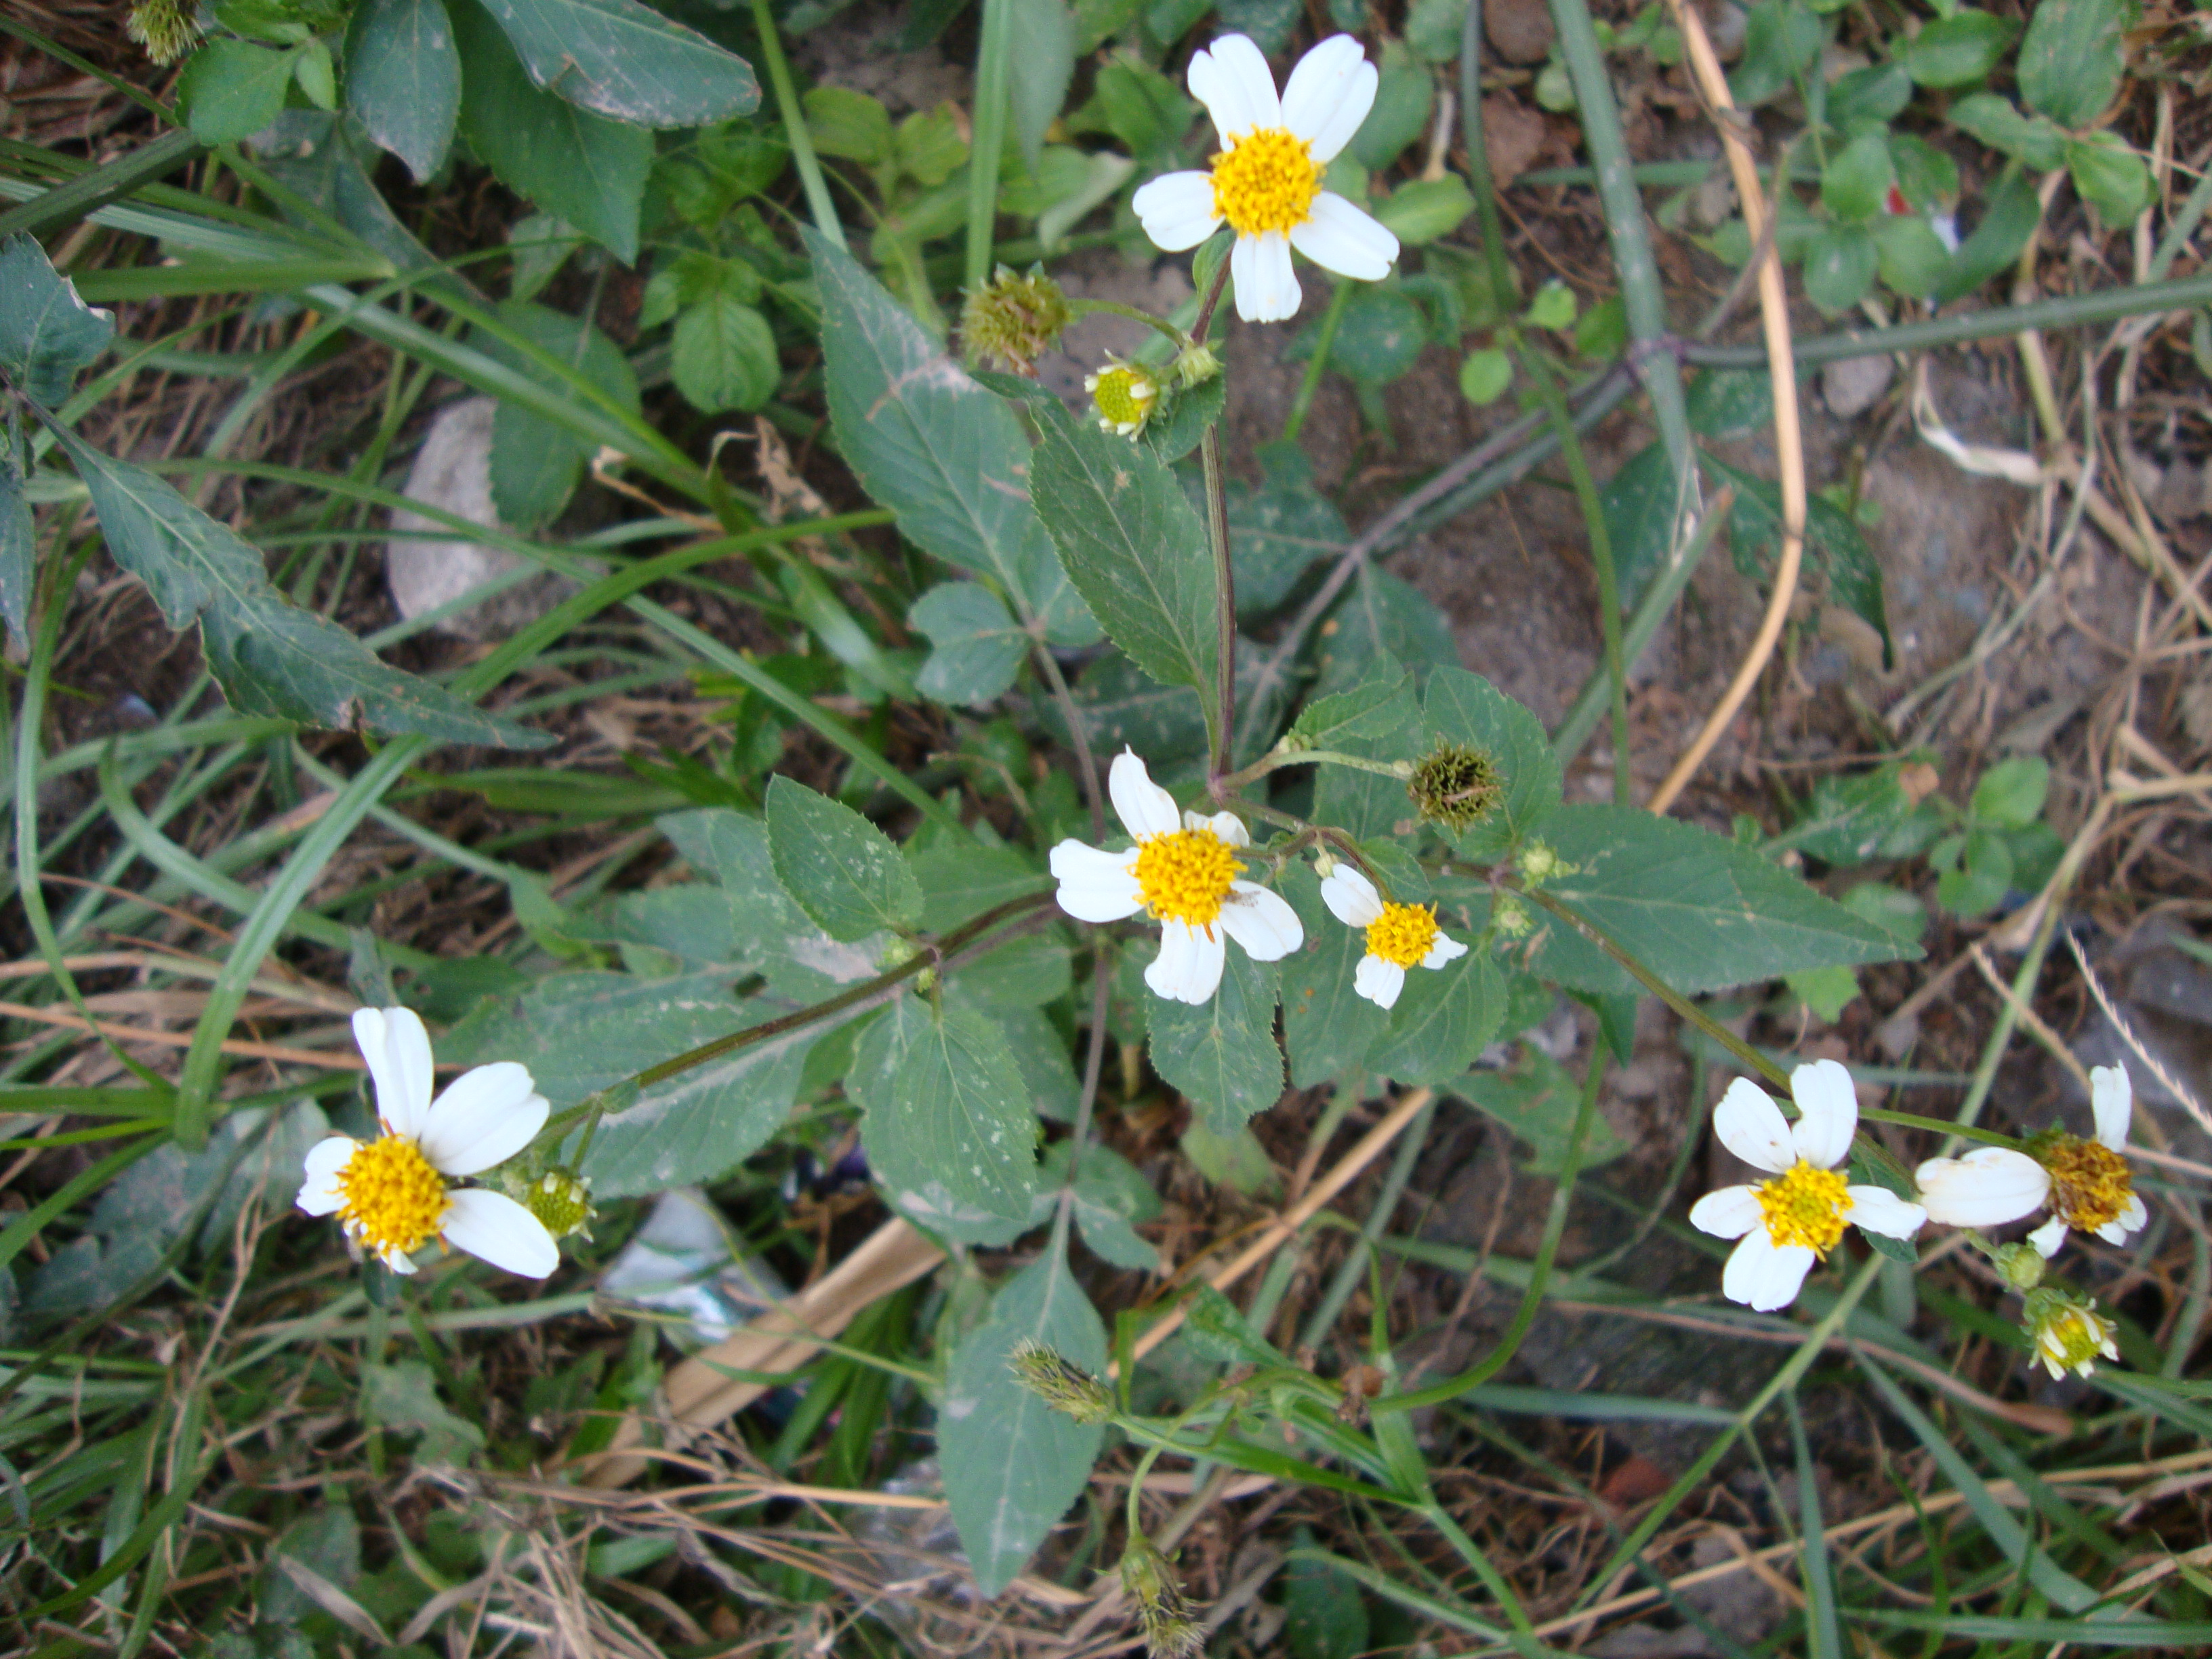 http://upload.wikimedia.org/wikipedia/commons/4/4a/Bidens_pilosa_(5).JPG